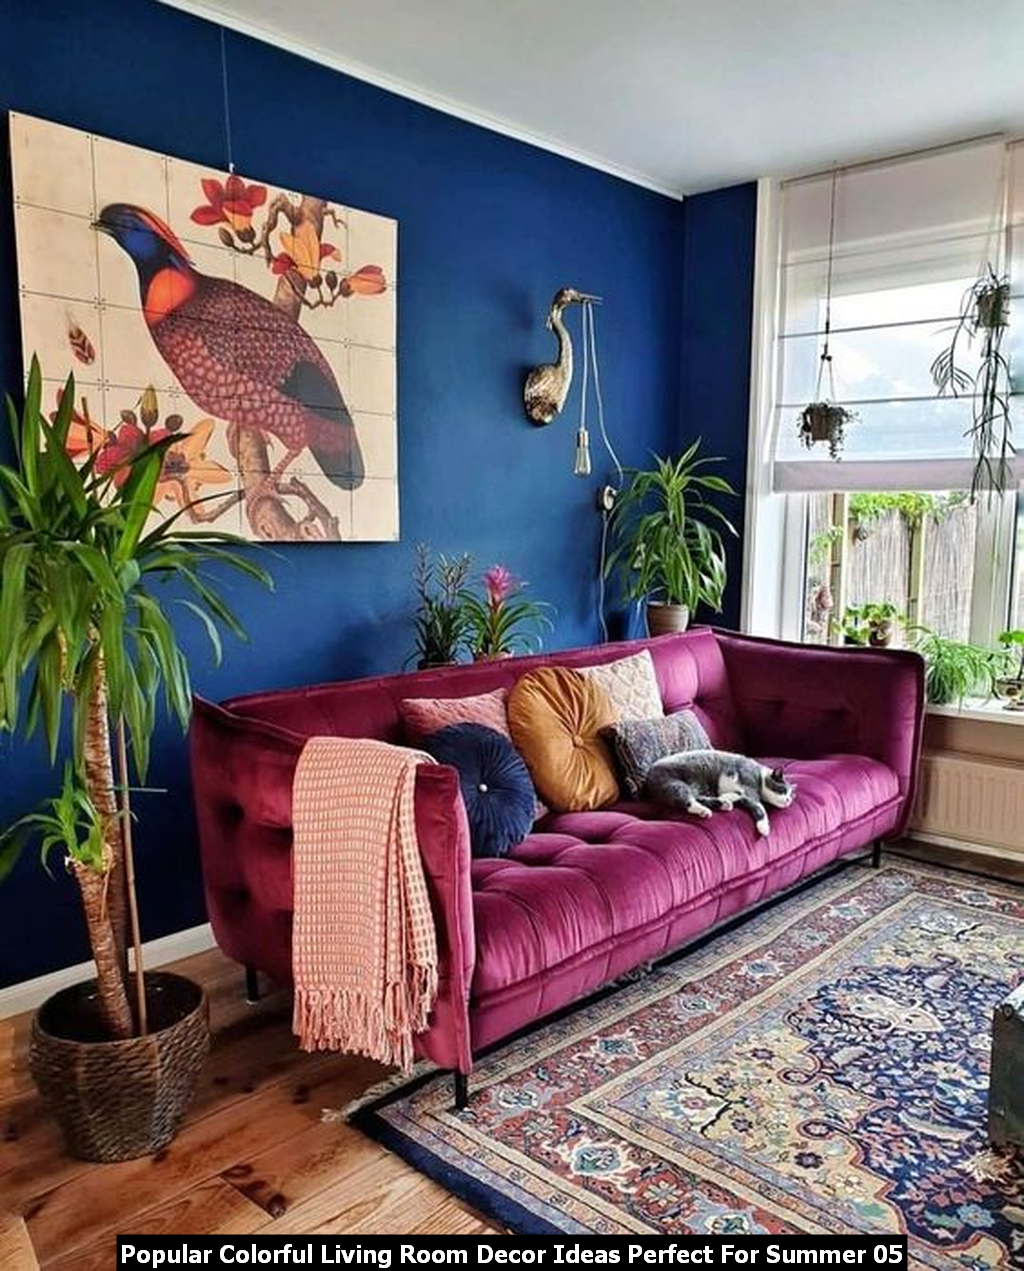 Popular Colorful Living Room Decor Ideas Perfect For Summer 05